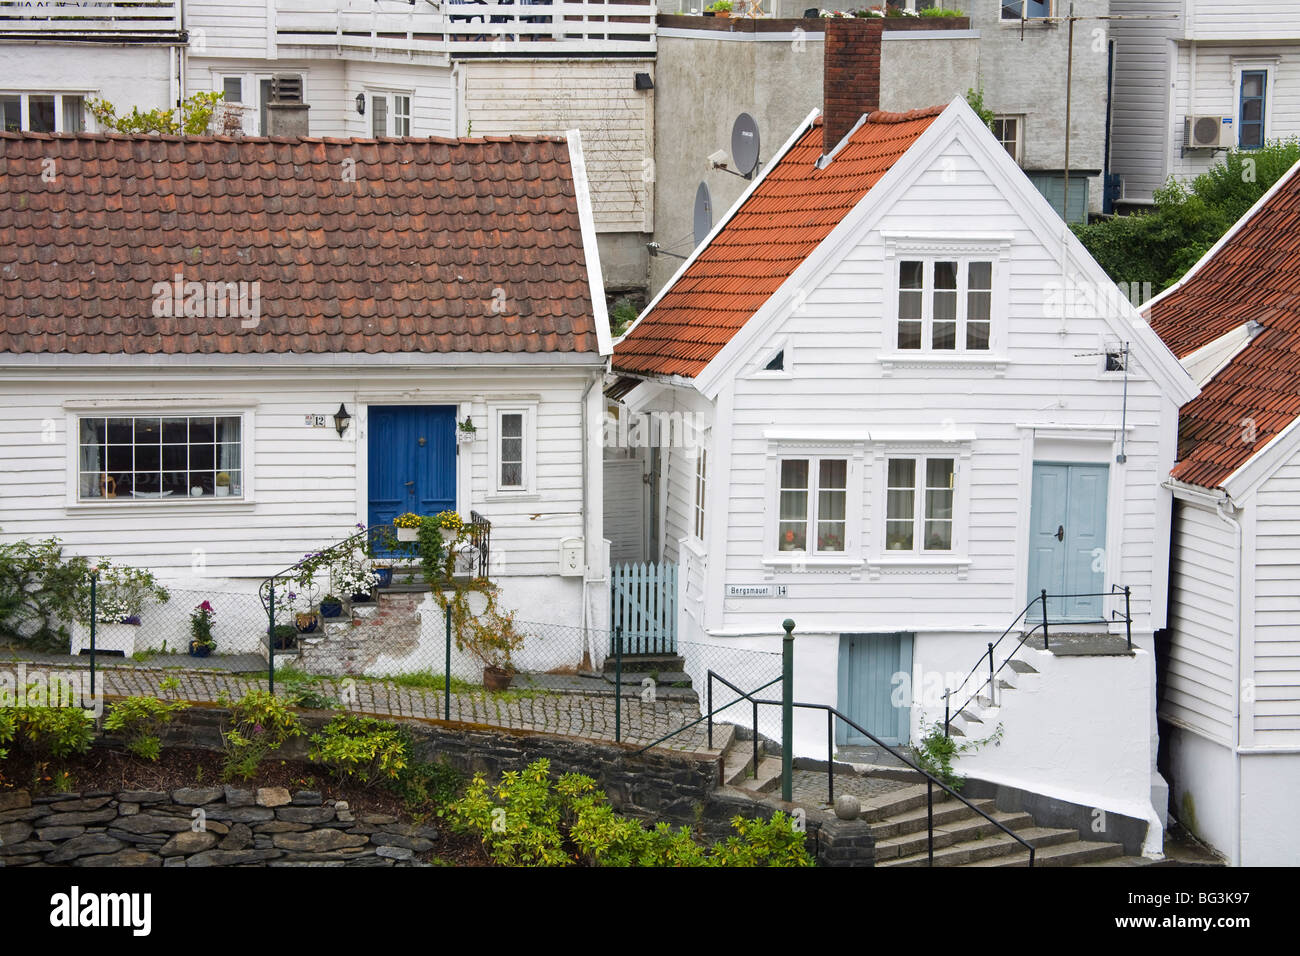 Gamble (Old) Stavanger, Stavanger City, Ragoland District, Norway, Scandinavia, Europe - Stock Image